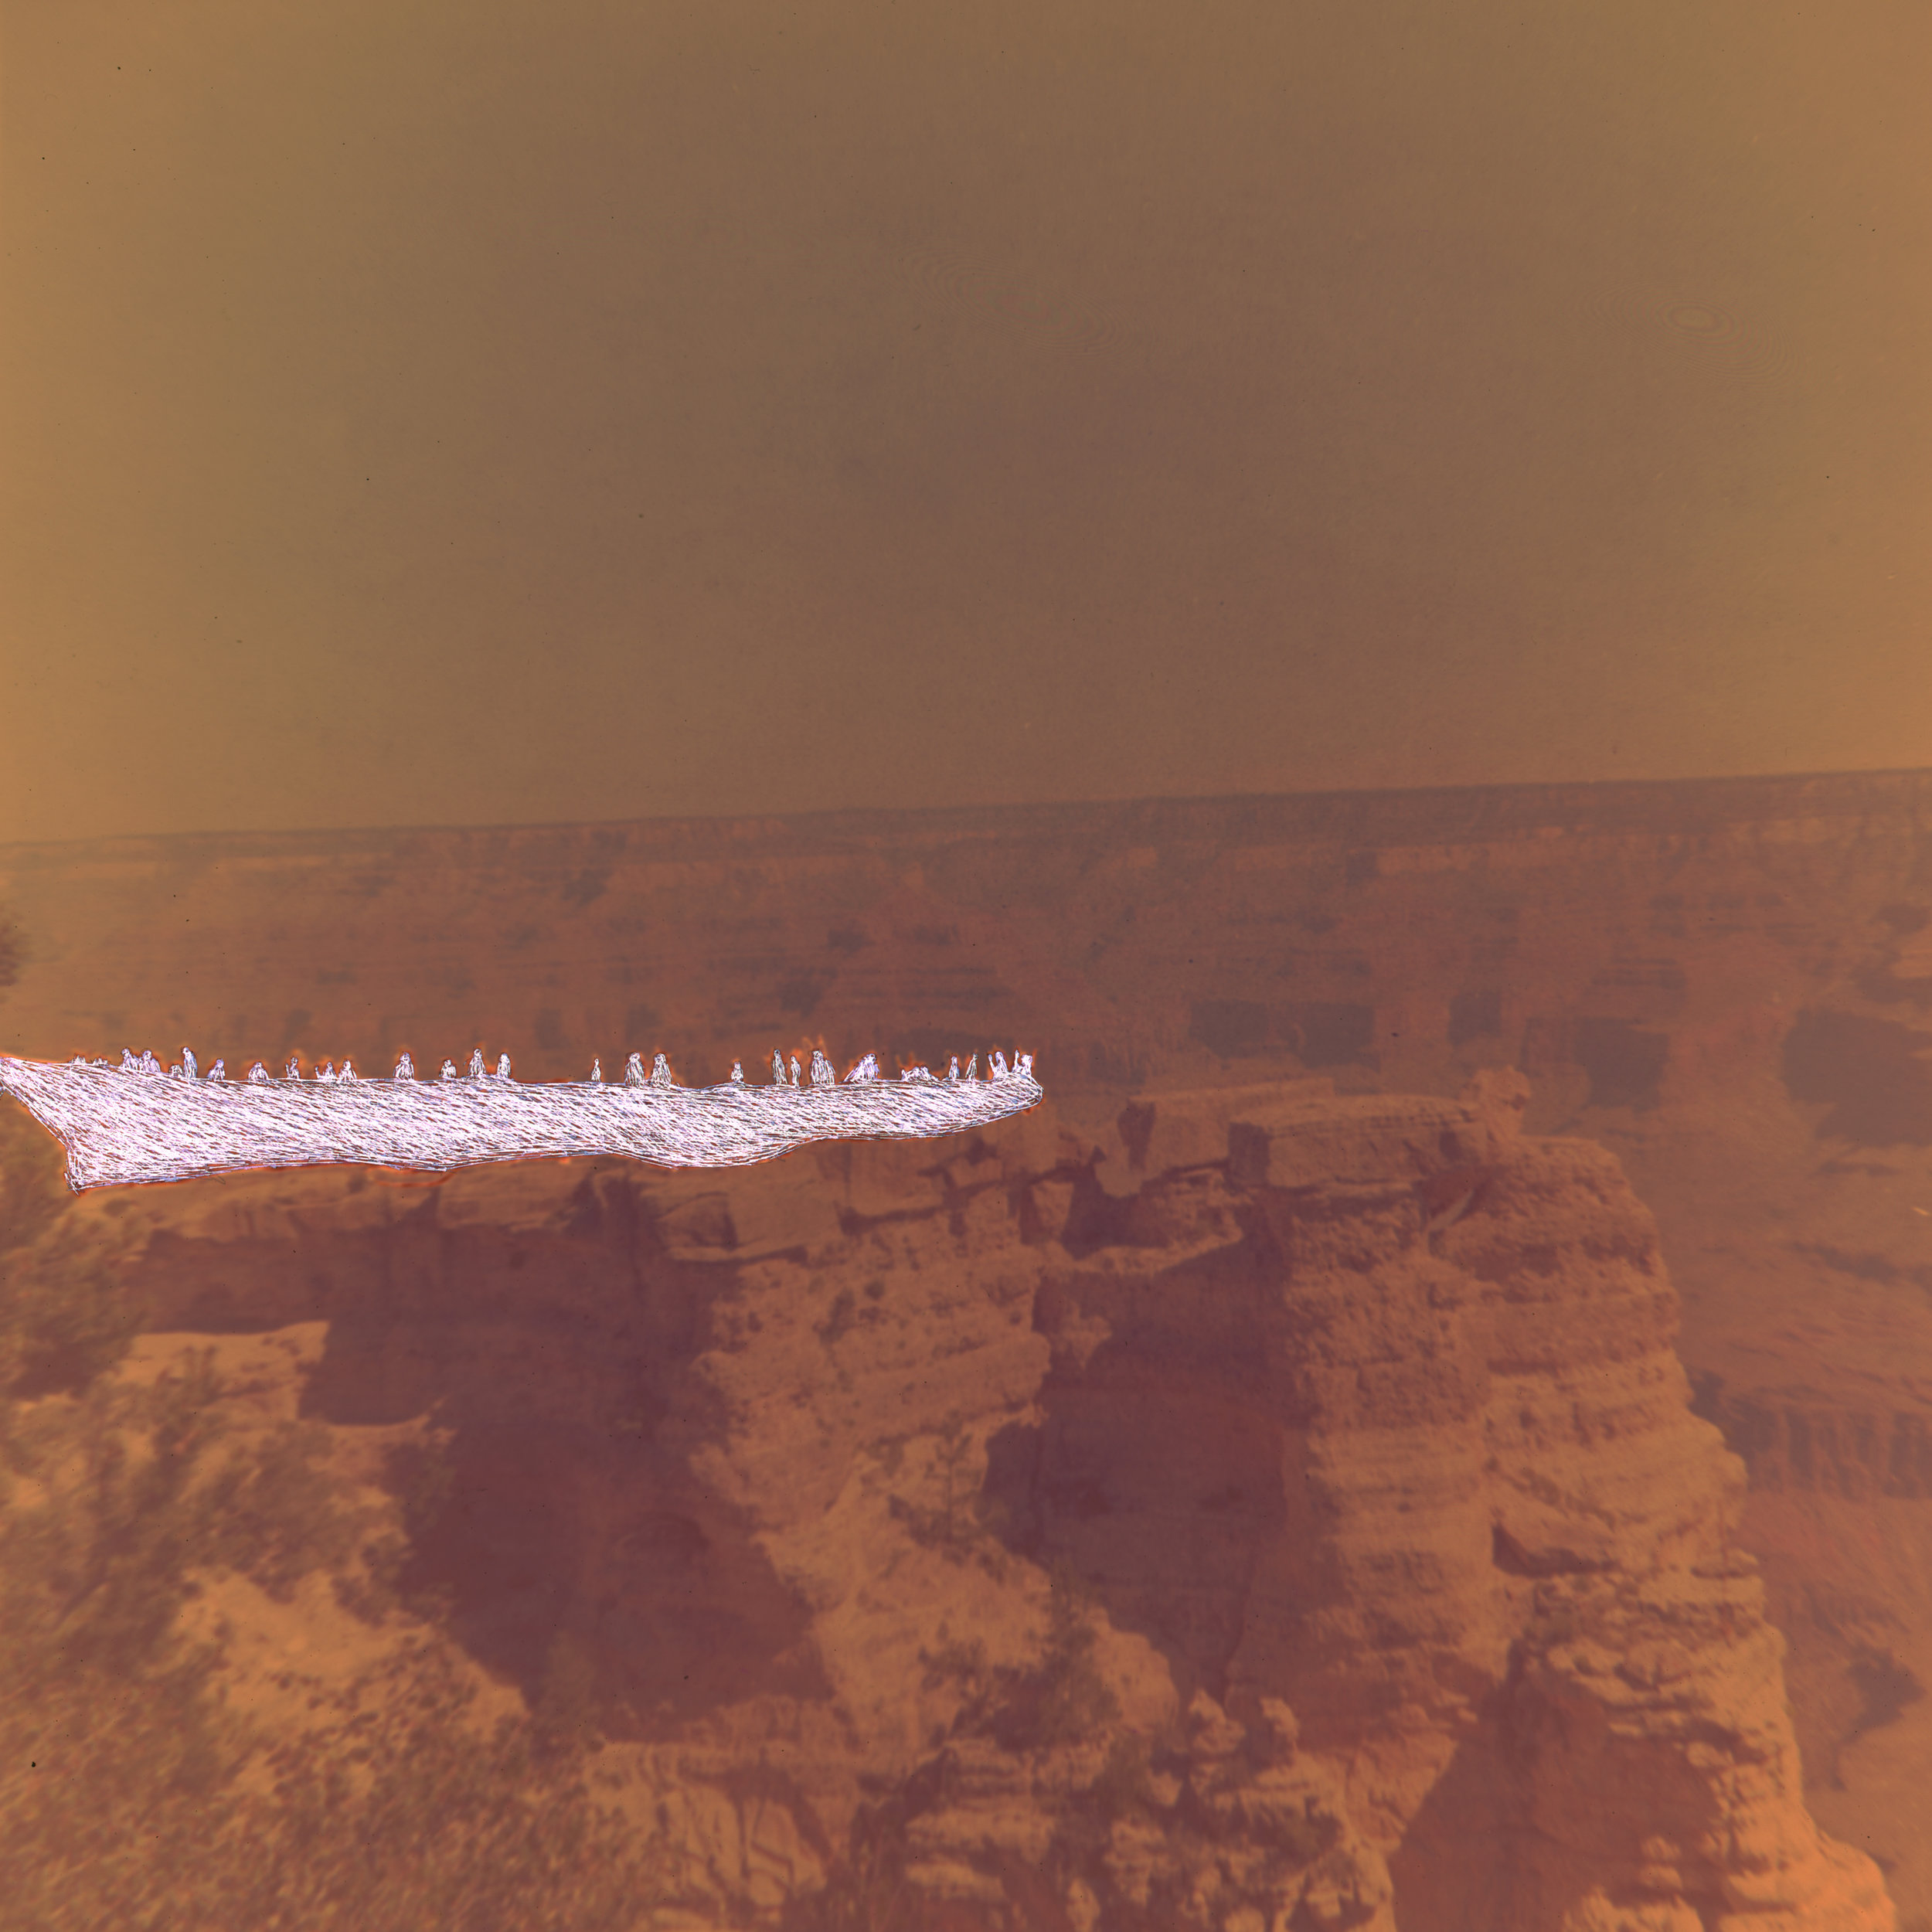 canyon_tourist004.jpg